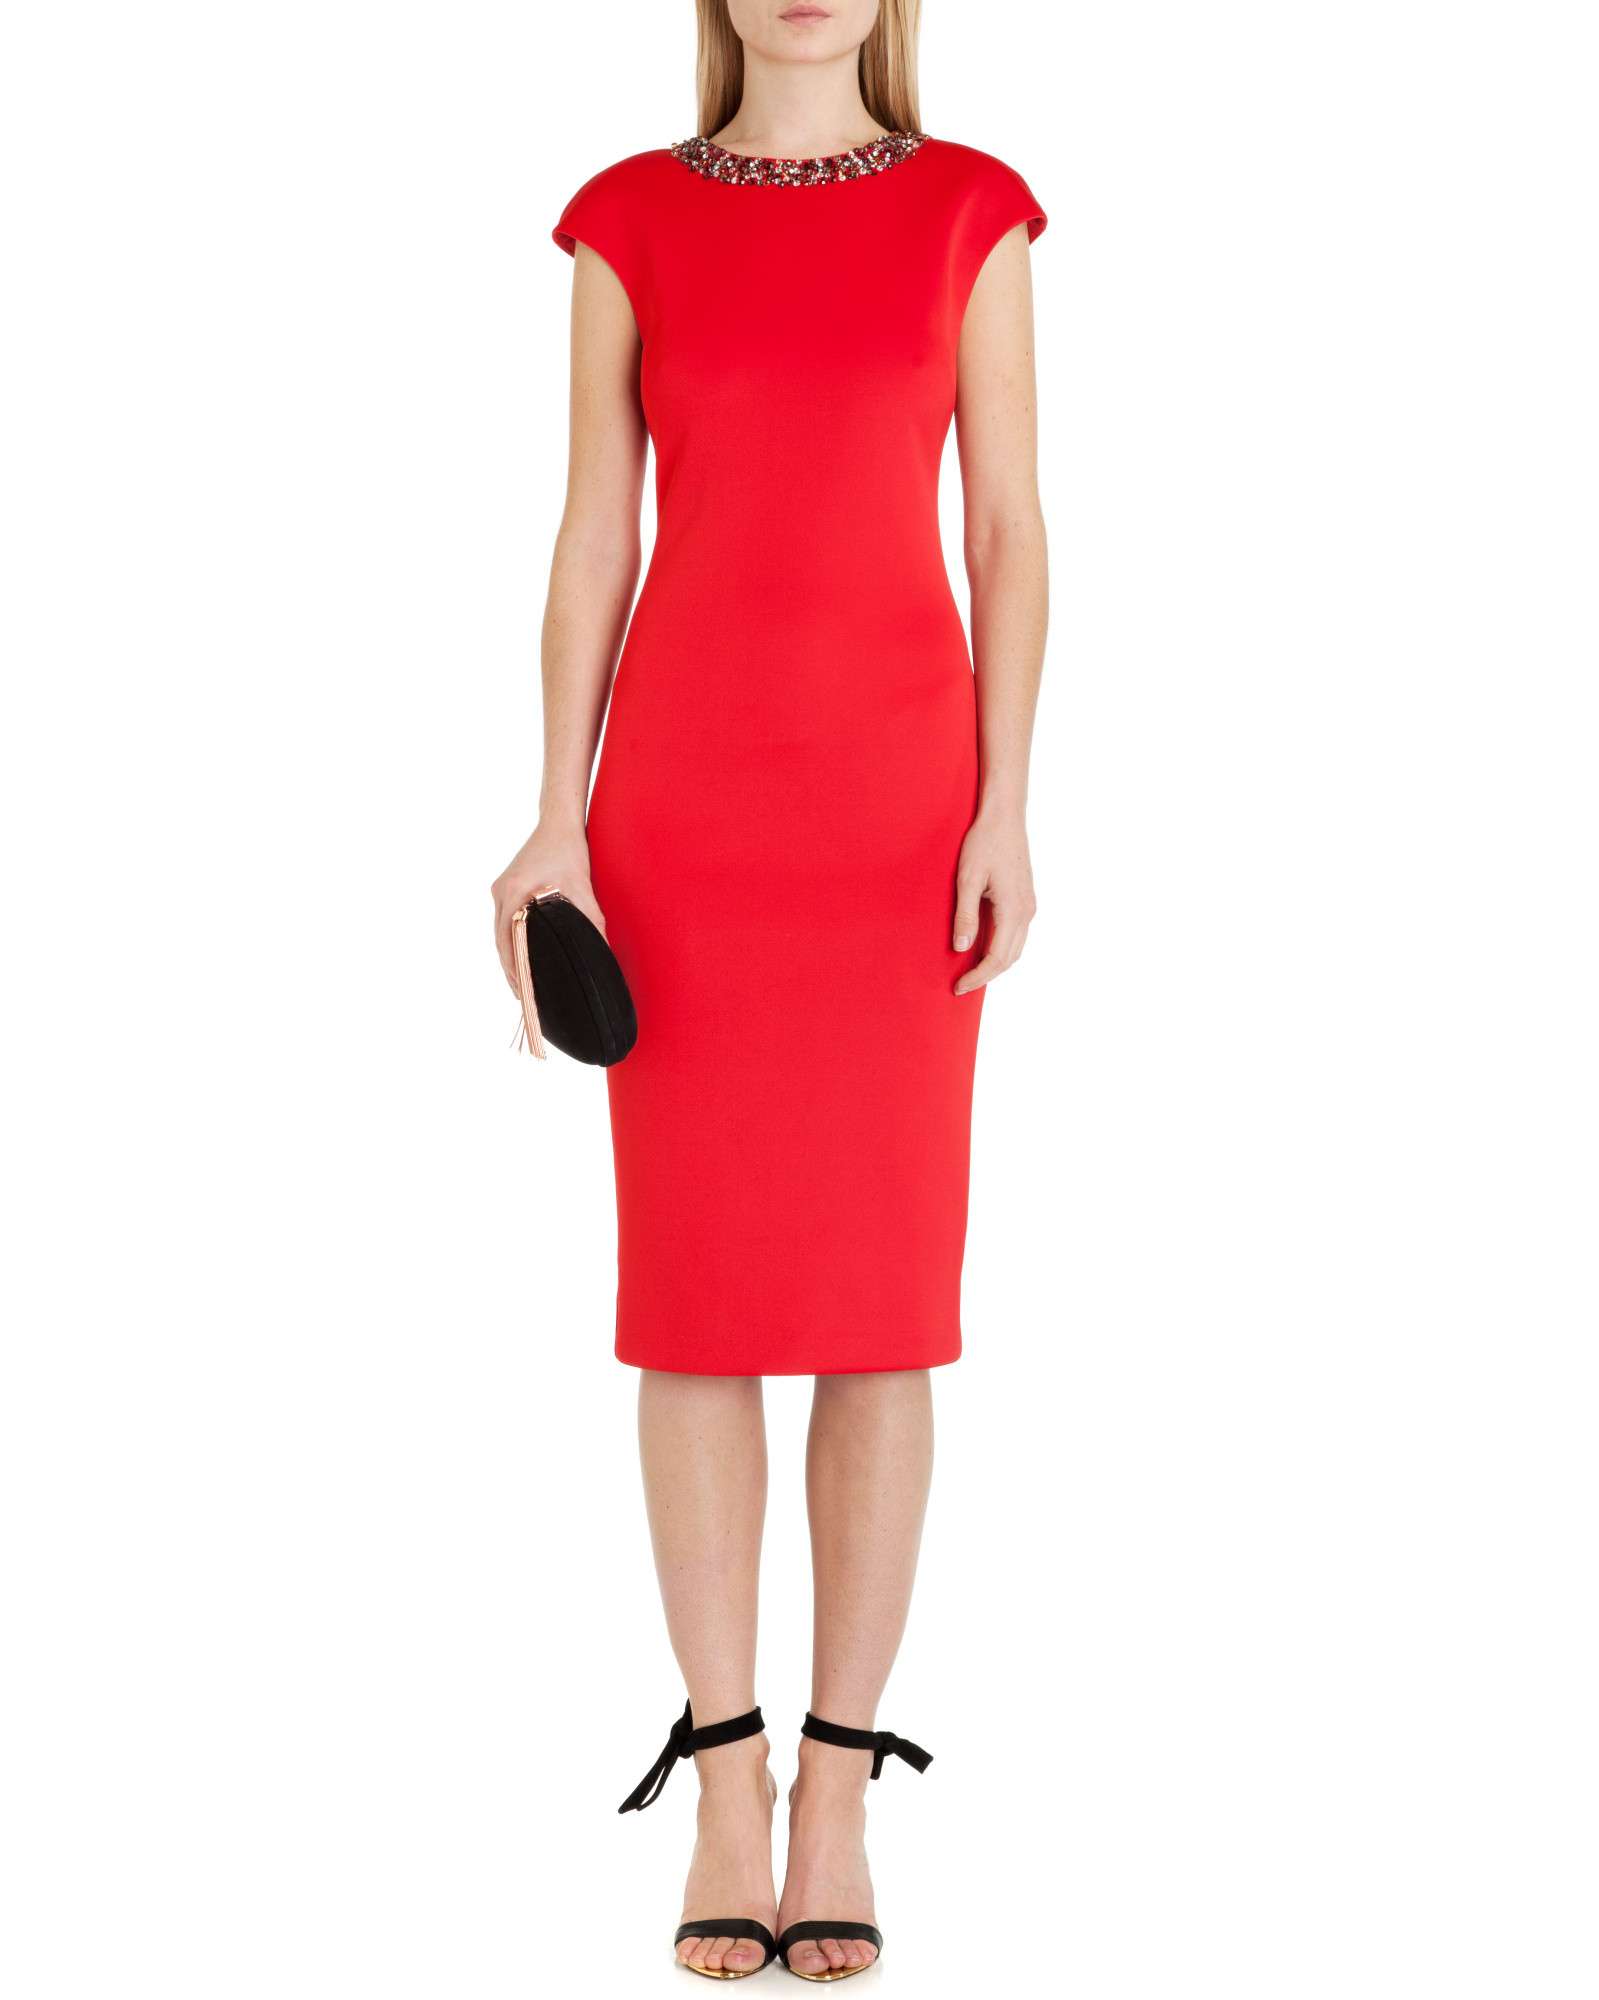 1f022d5e89f40 Ted Baker Elenna Embellished Midi Dress in Red - Lyst